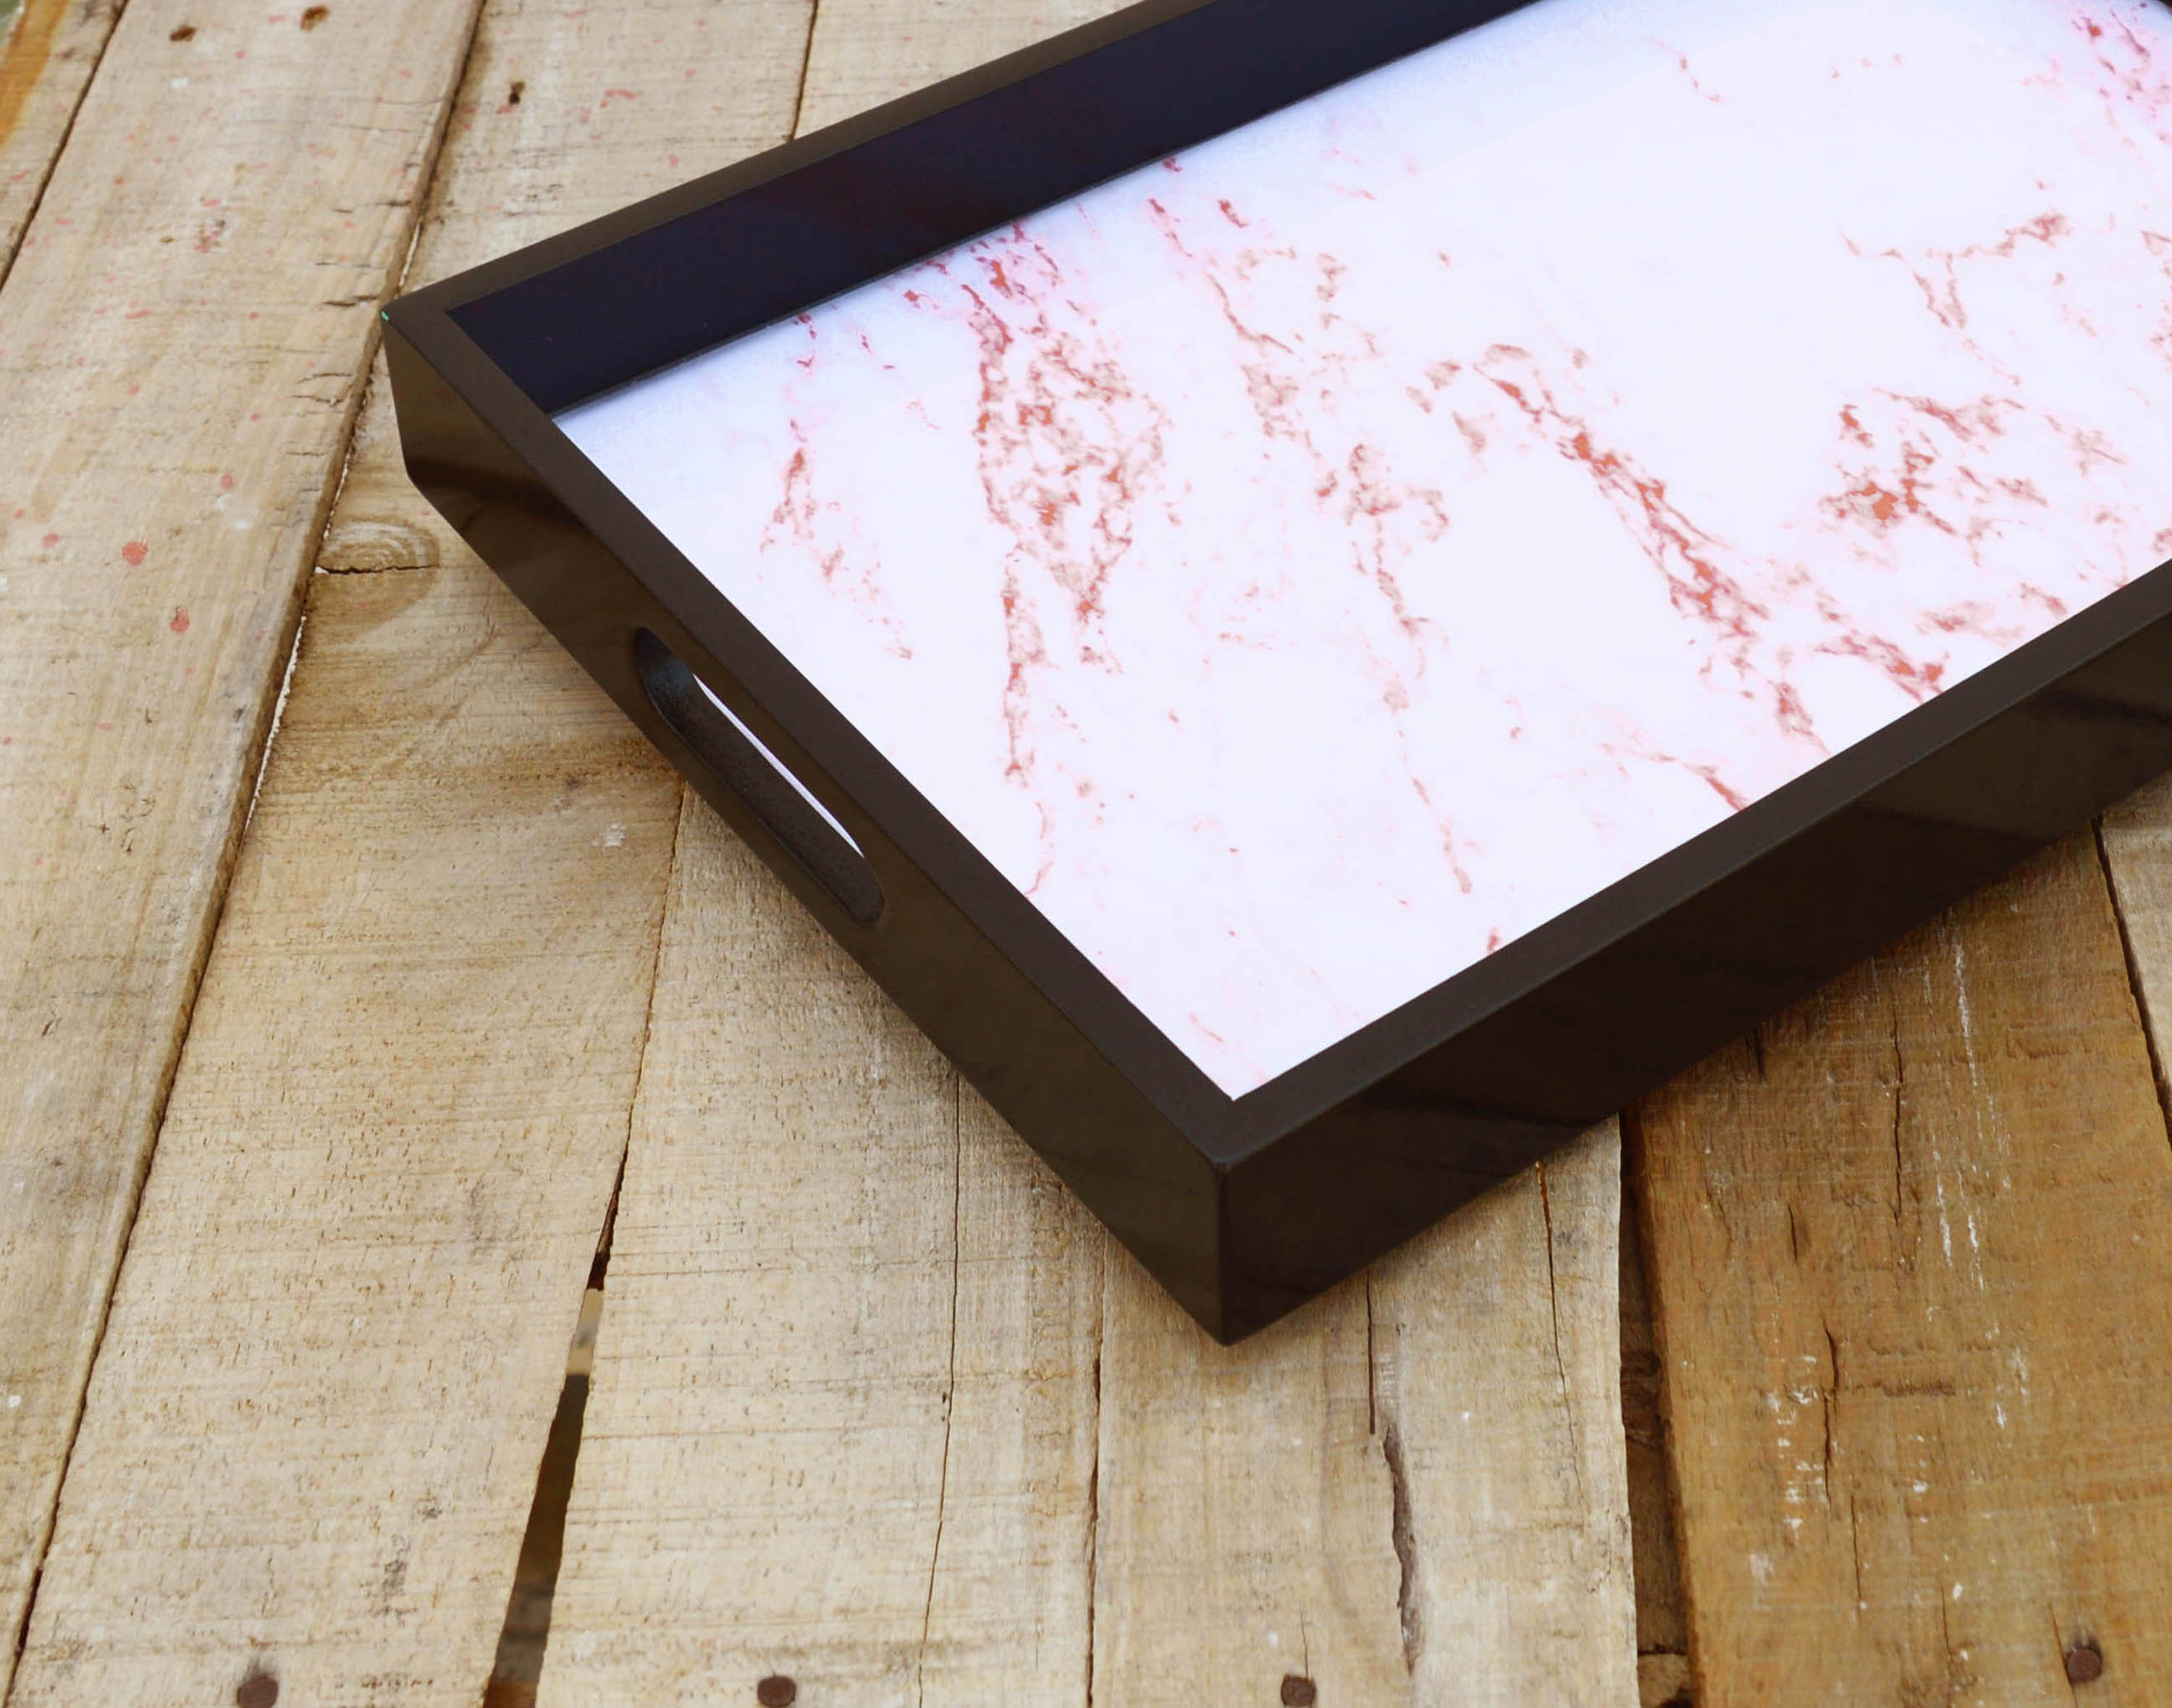 SALE 50% discount, Coral marble print, wooden tray, resin finish, lacquered frame, no glass, serving tray, gift, 10X15 inches